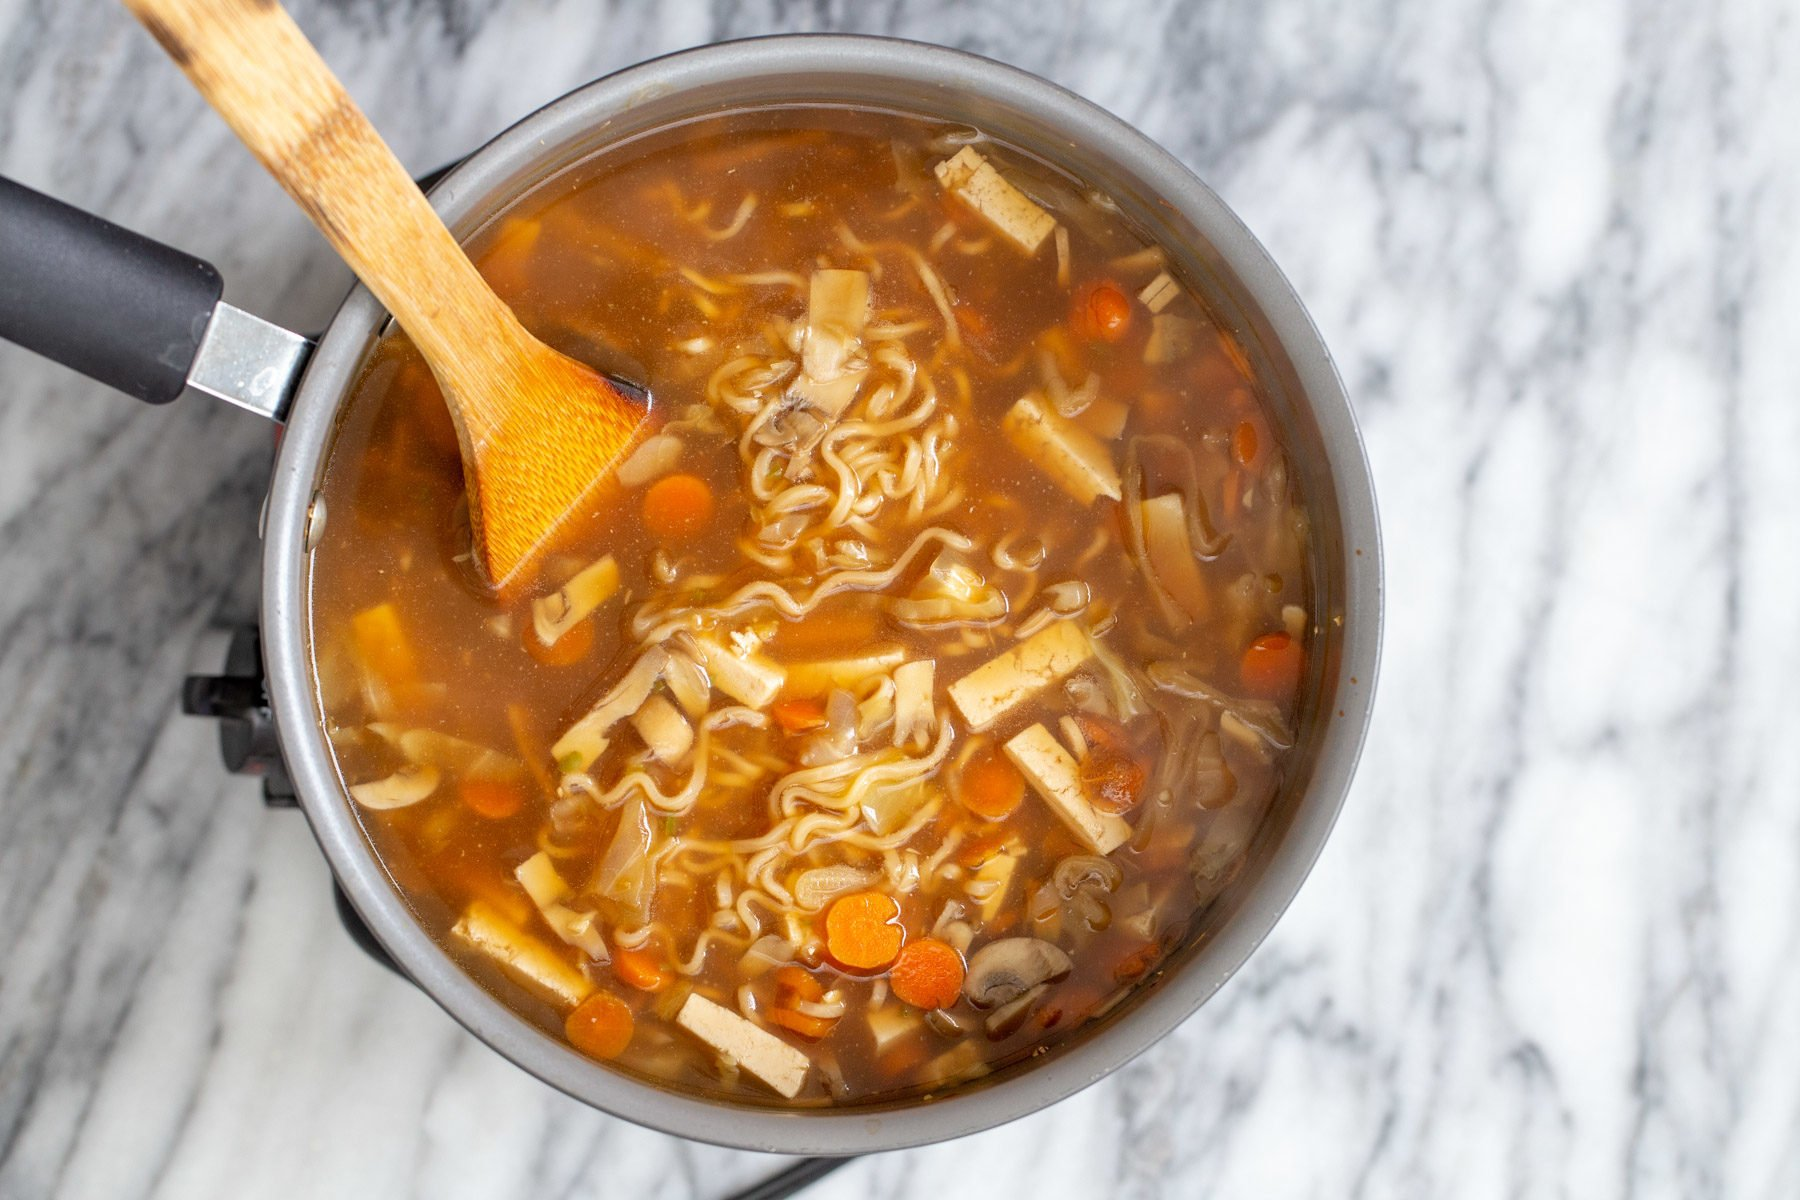 vegan hot and sour soup with ramen noodles in a silver soup pot with a wooden spoon